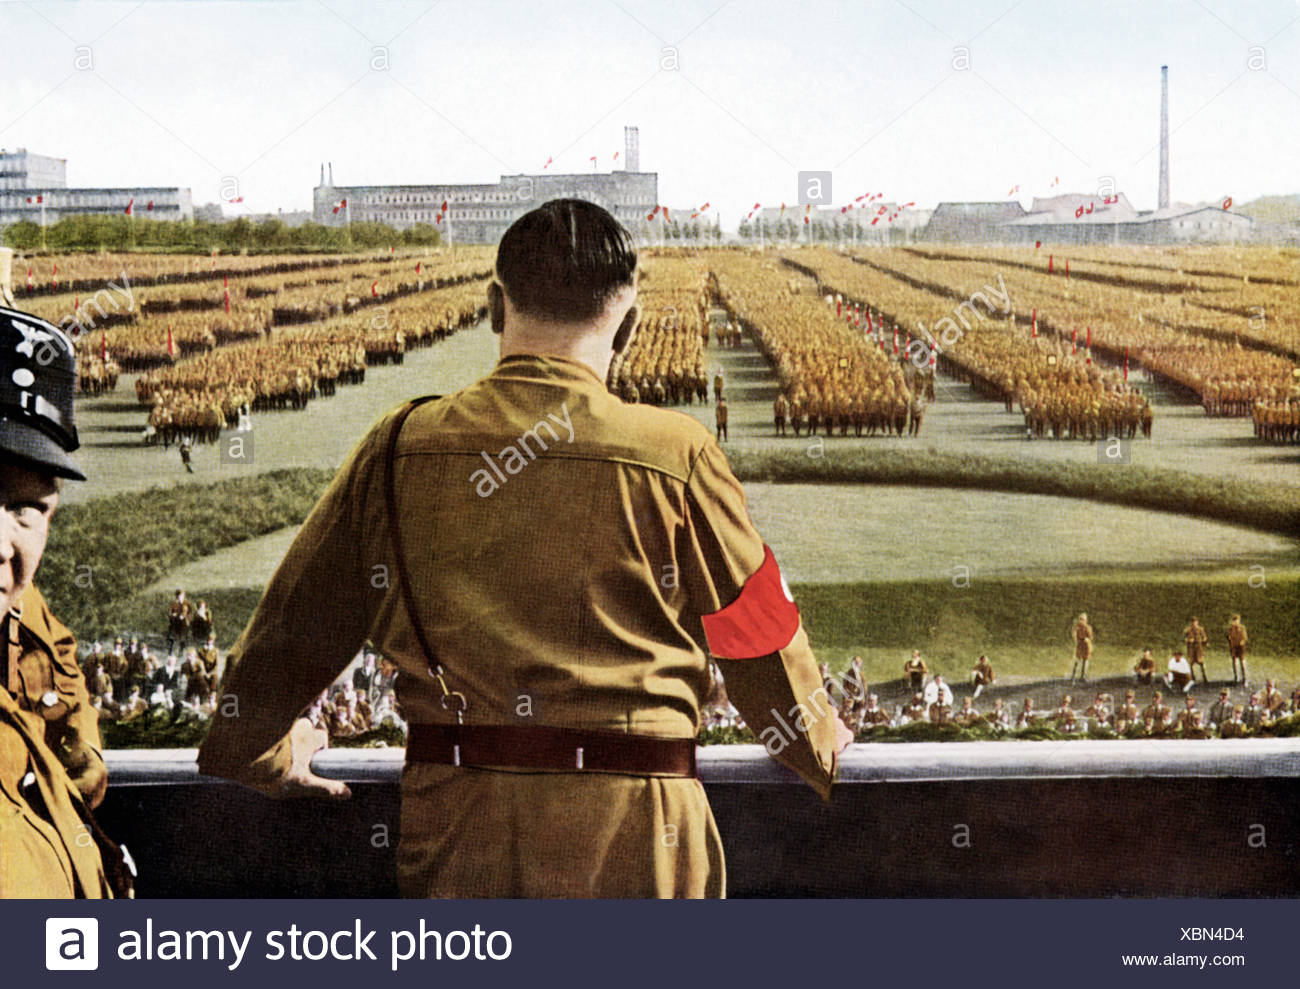 Hitler, Adolf, 20.4.1889 - 30.4.1945, German politician (NSDAP), Fuehrer and Chancellor of the Reich 30.1.1933 - 30.4.1945, half length, addressing members of the storm troopers (SA), Dortmund, 1933, Additional-Rights-Clearances-NA - Stock Image